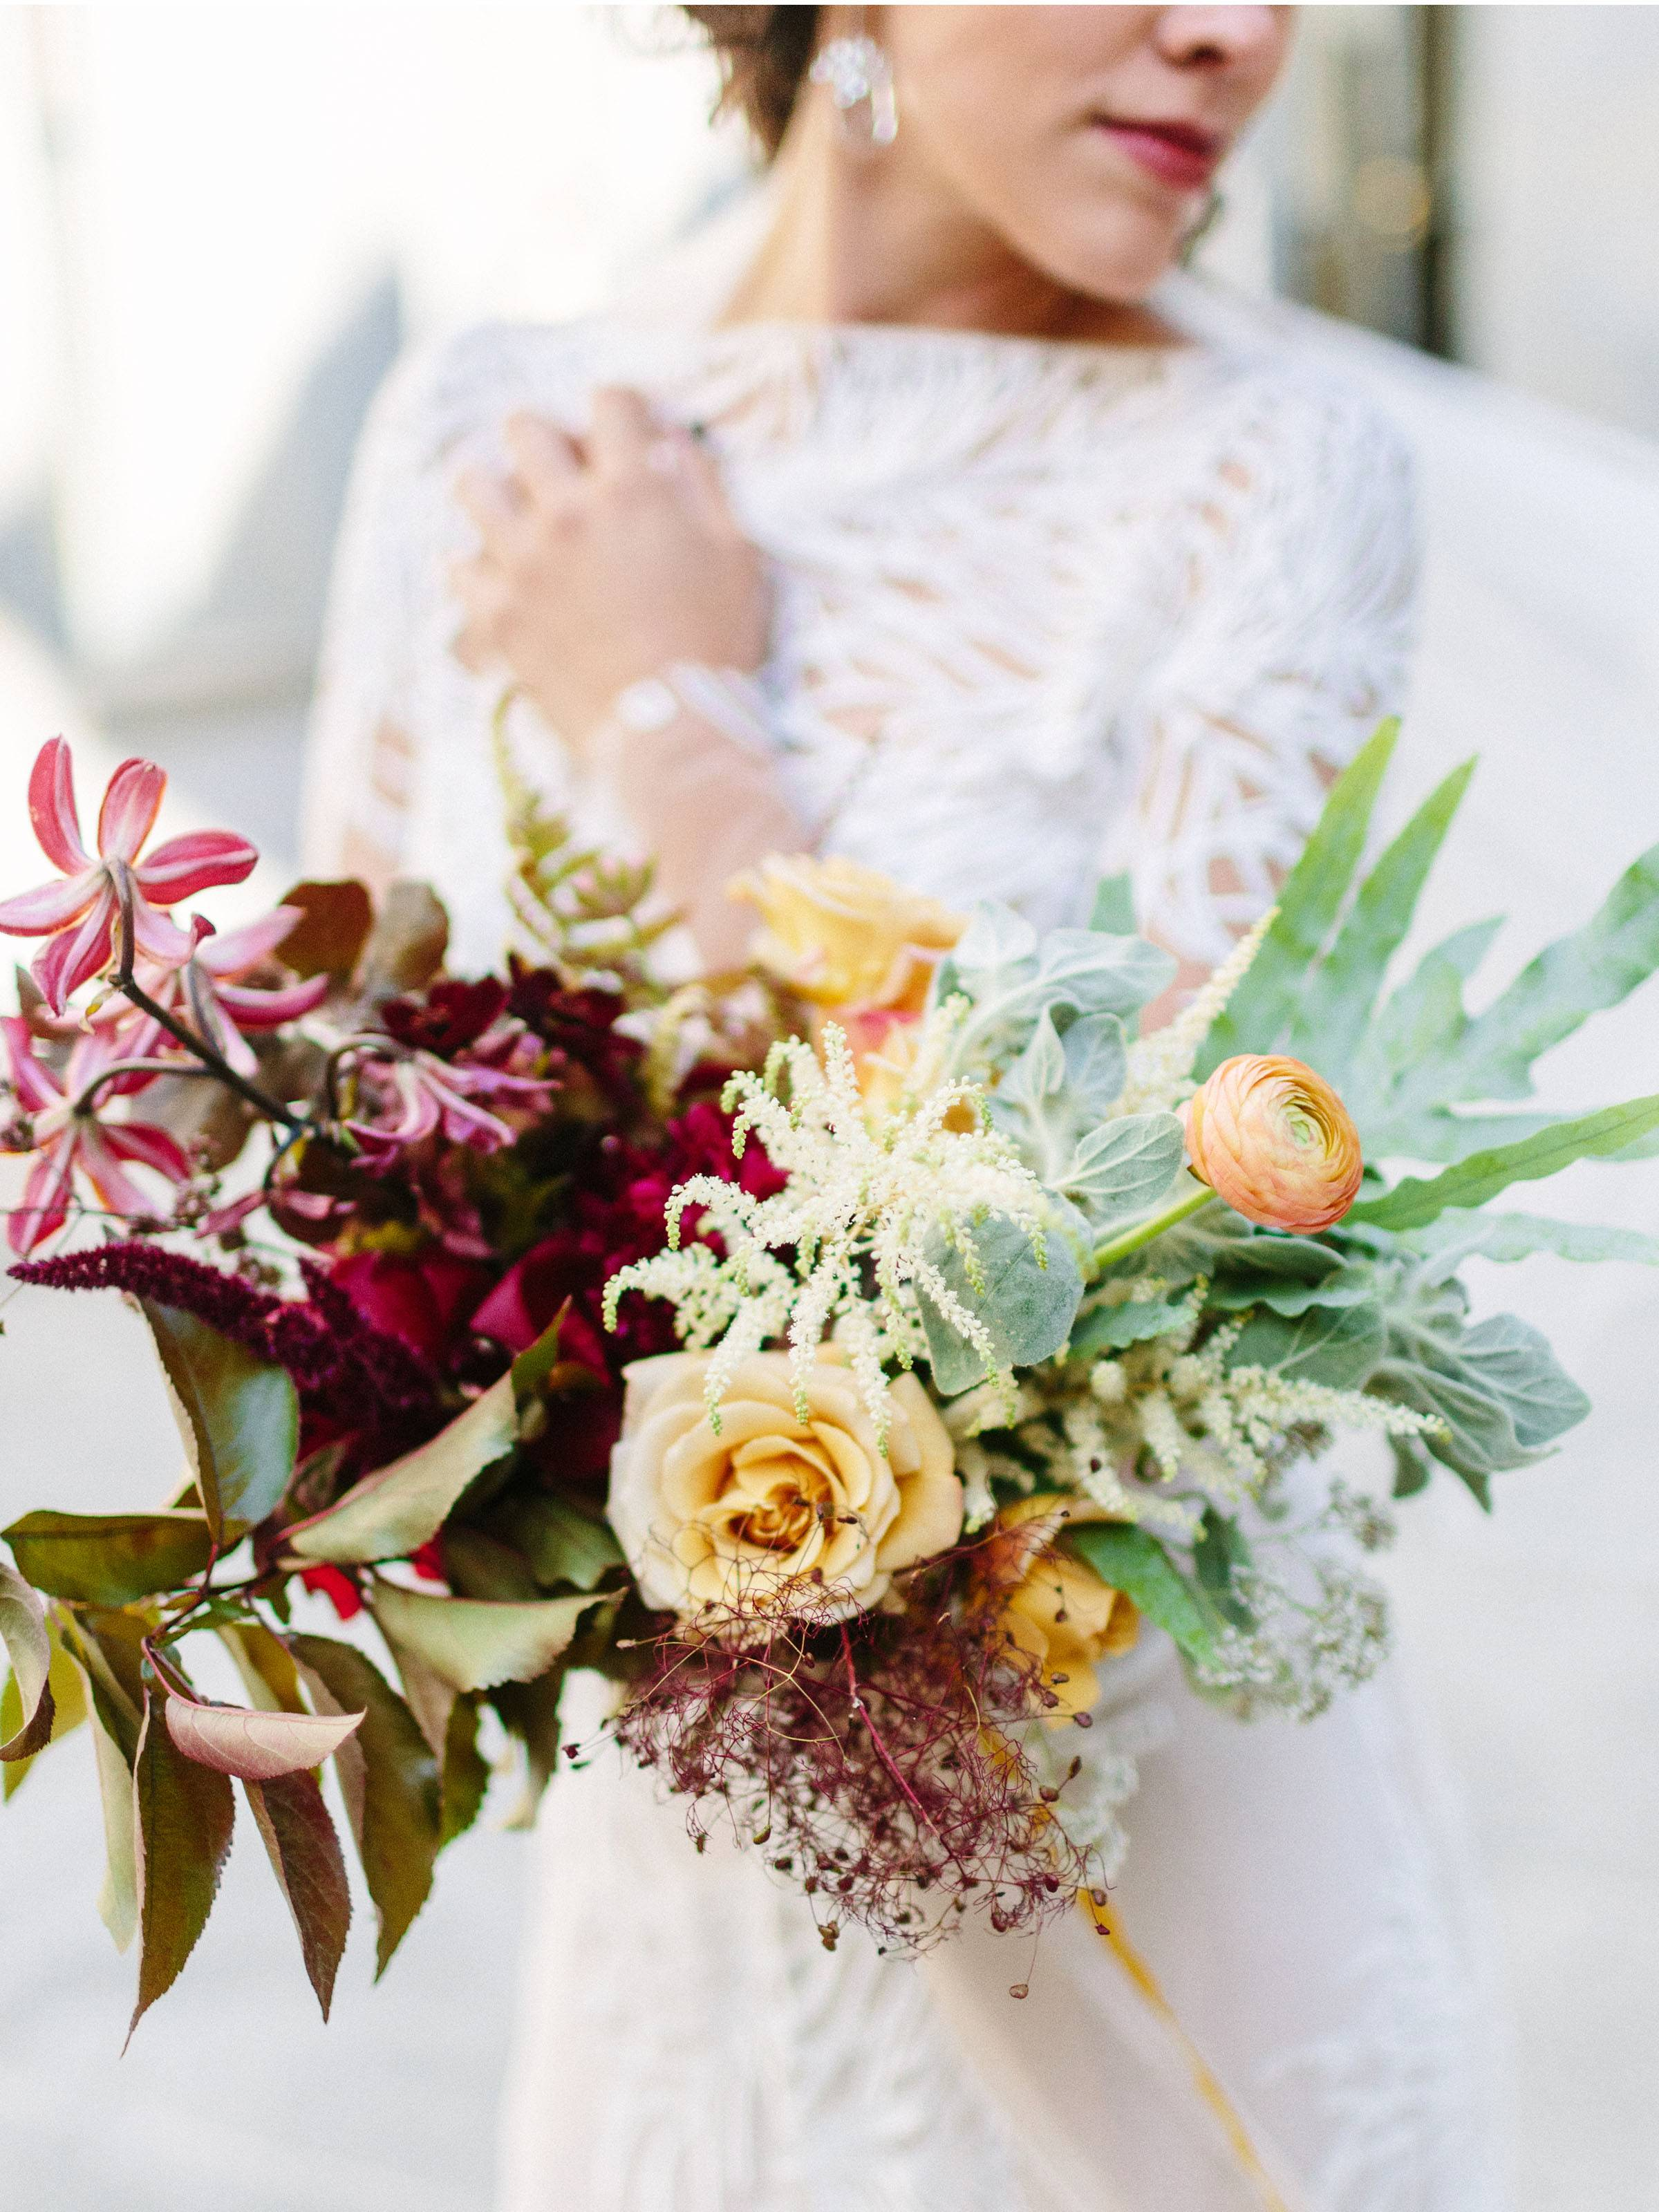 Multi-color bouquet with burgundy, yellow and mint green flowers